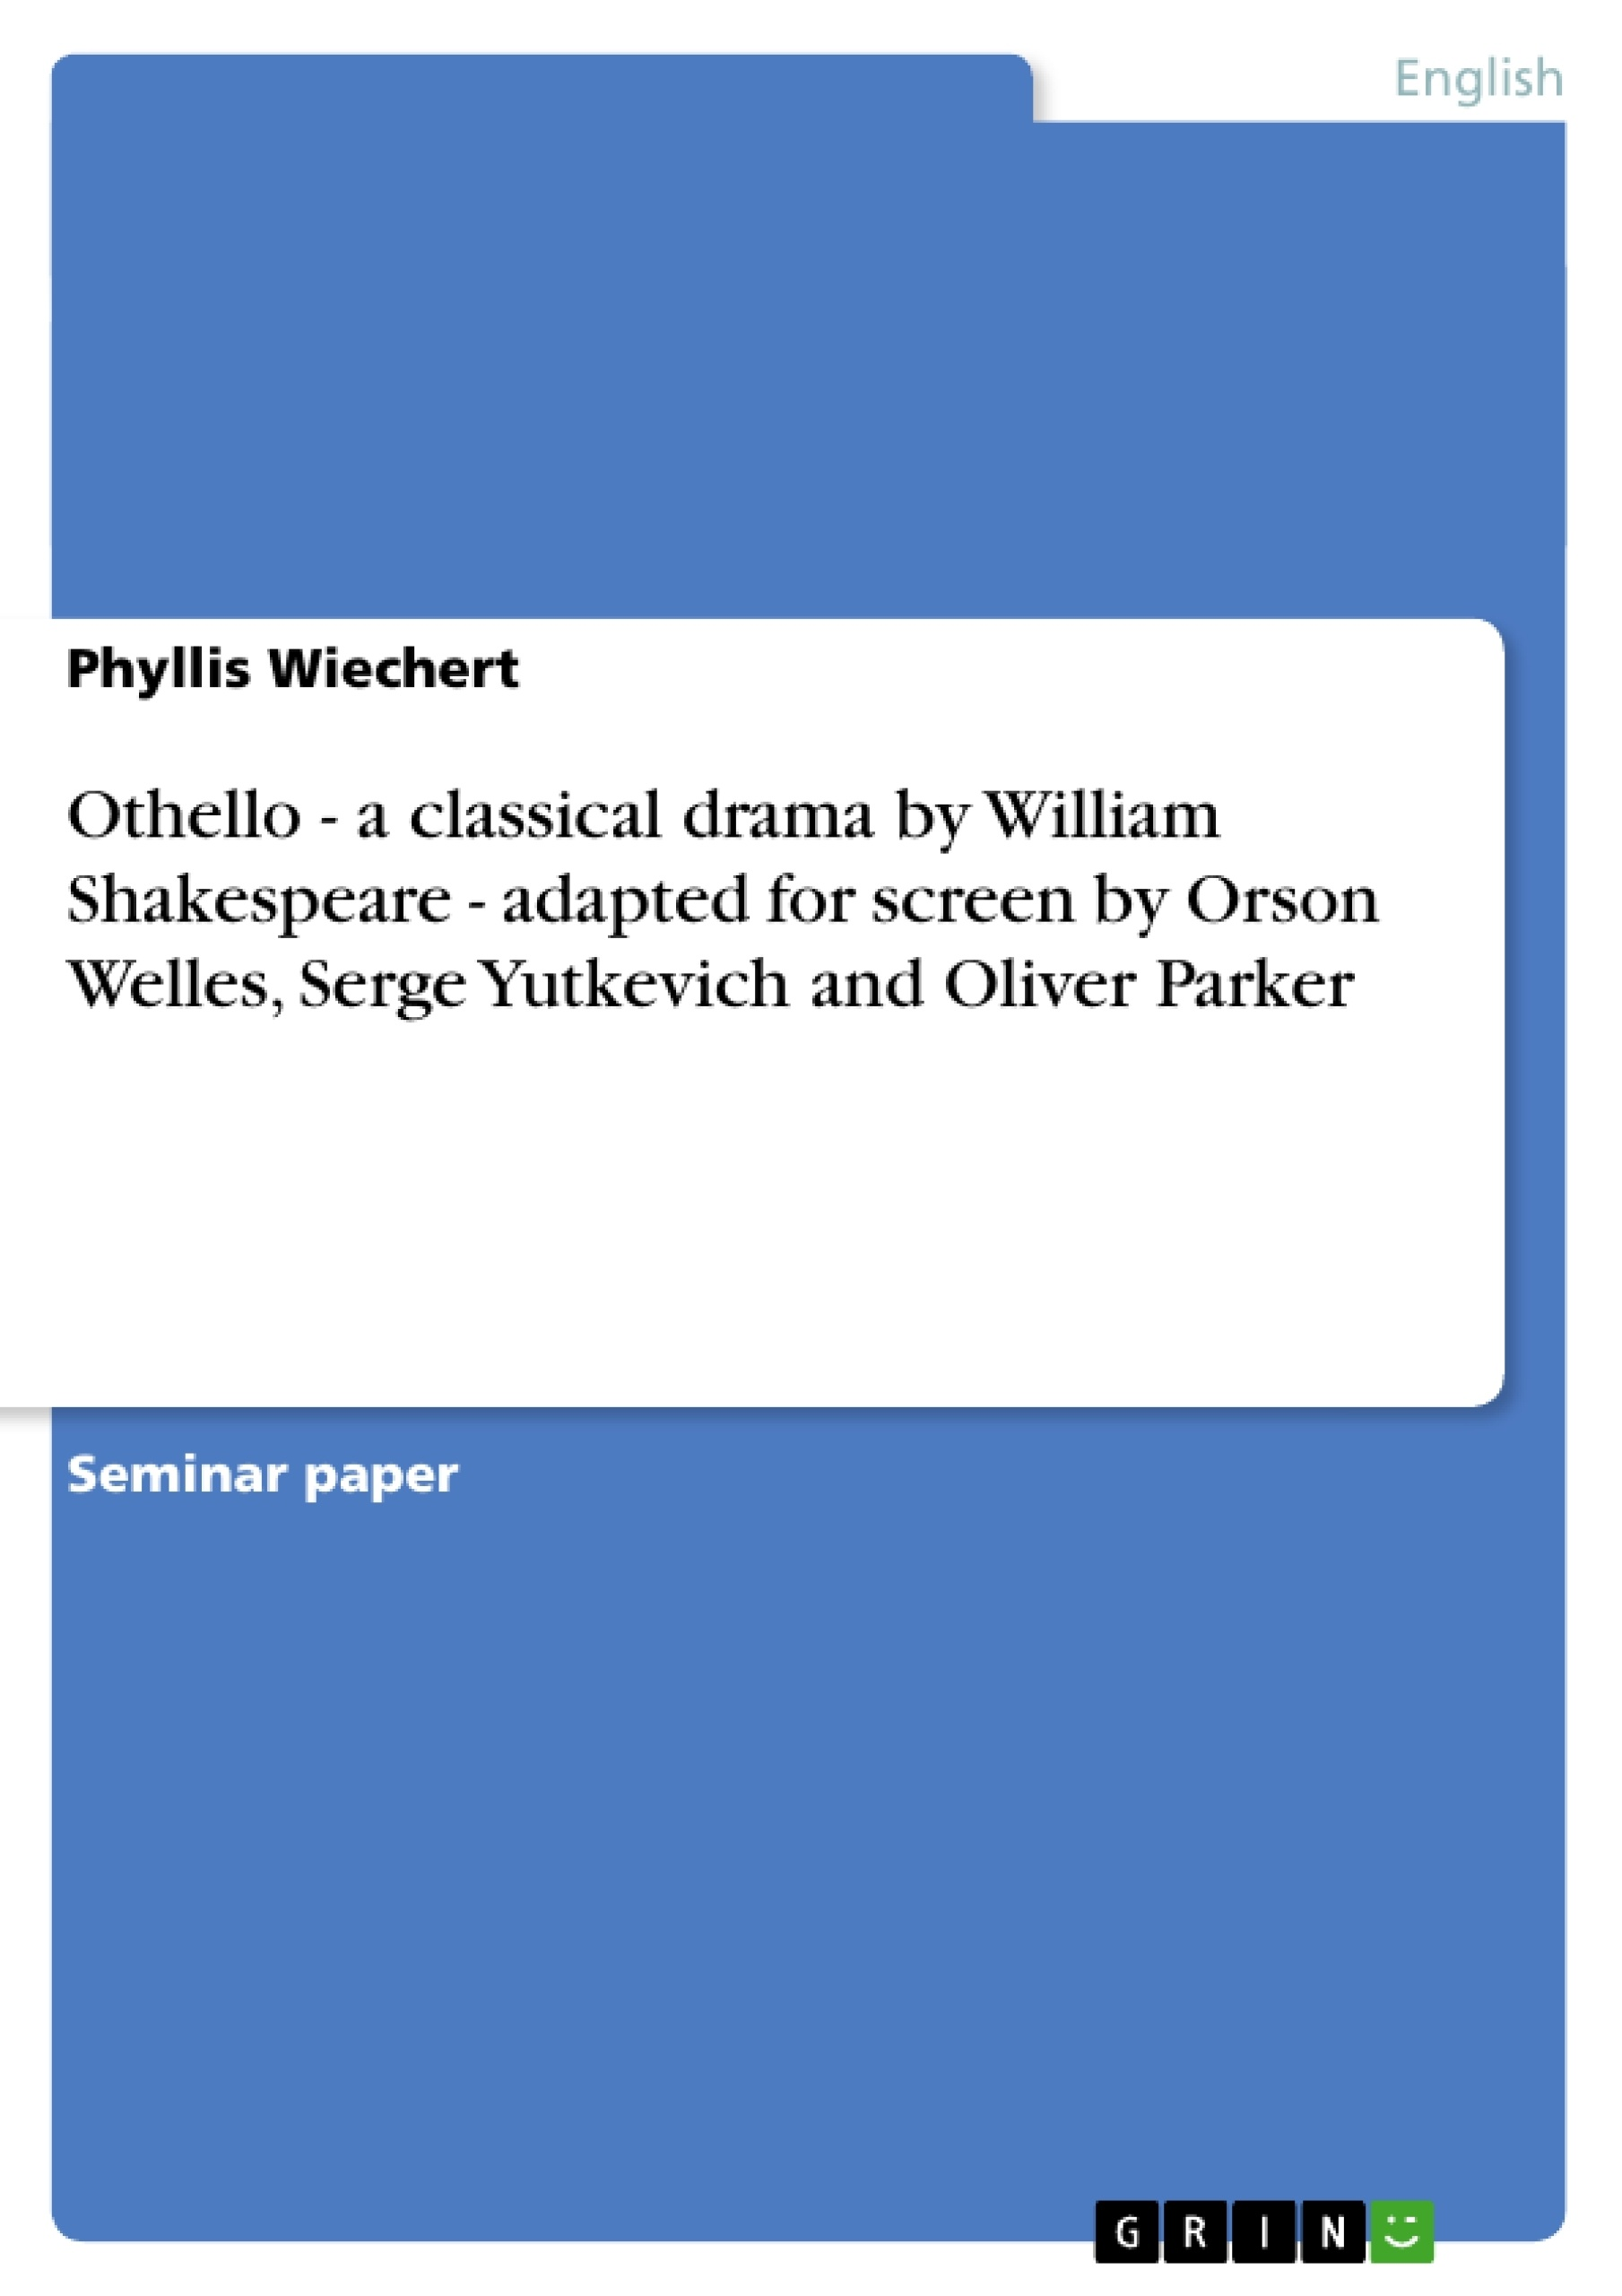 Title: Othello - a classical drama by William Shakespeare - adapted for screen by Orson Welles, Serge Yutkevich and Oliver Parker